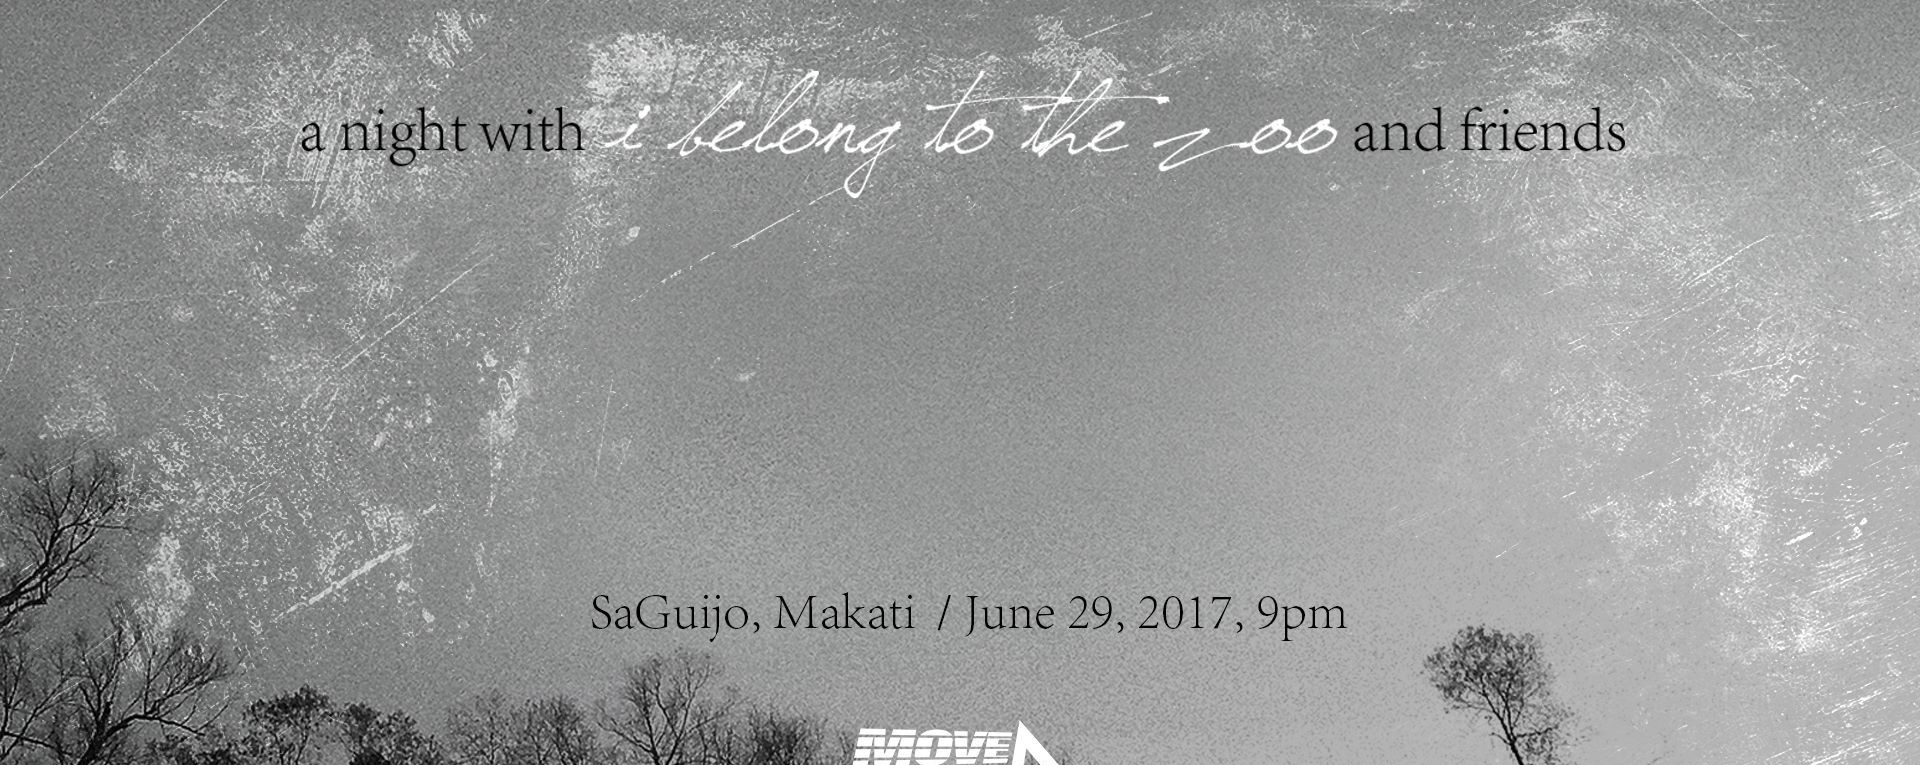 A Night with I Belong to the Zoo and Friends